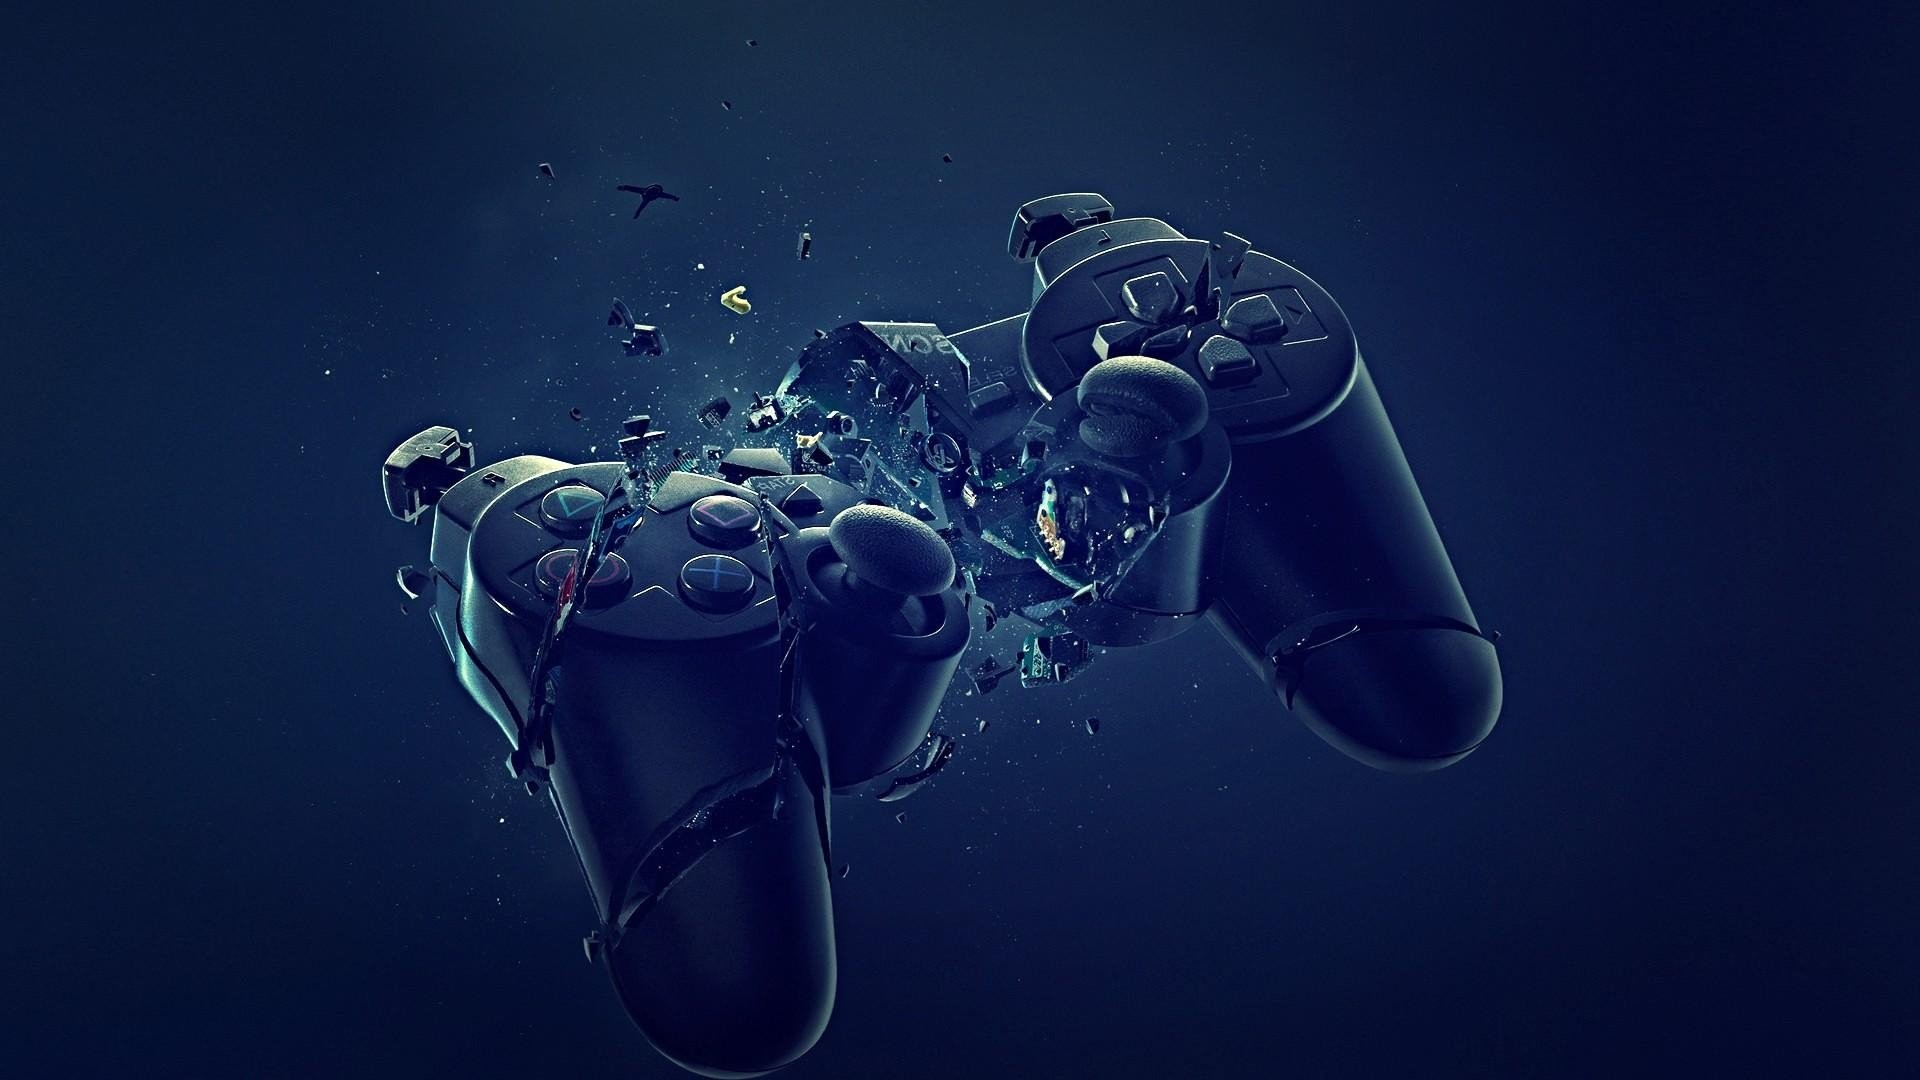 Gamer Thug Controller Hd Wallpapers: Playstation 4 Wallpaper HD (76+ Images